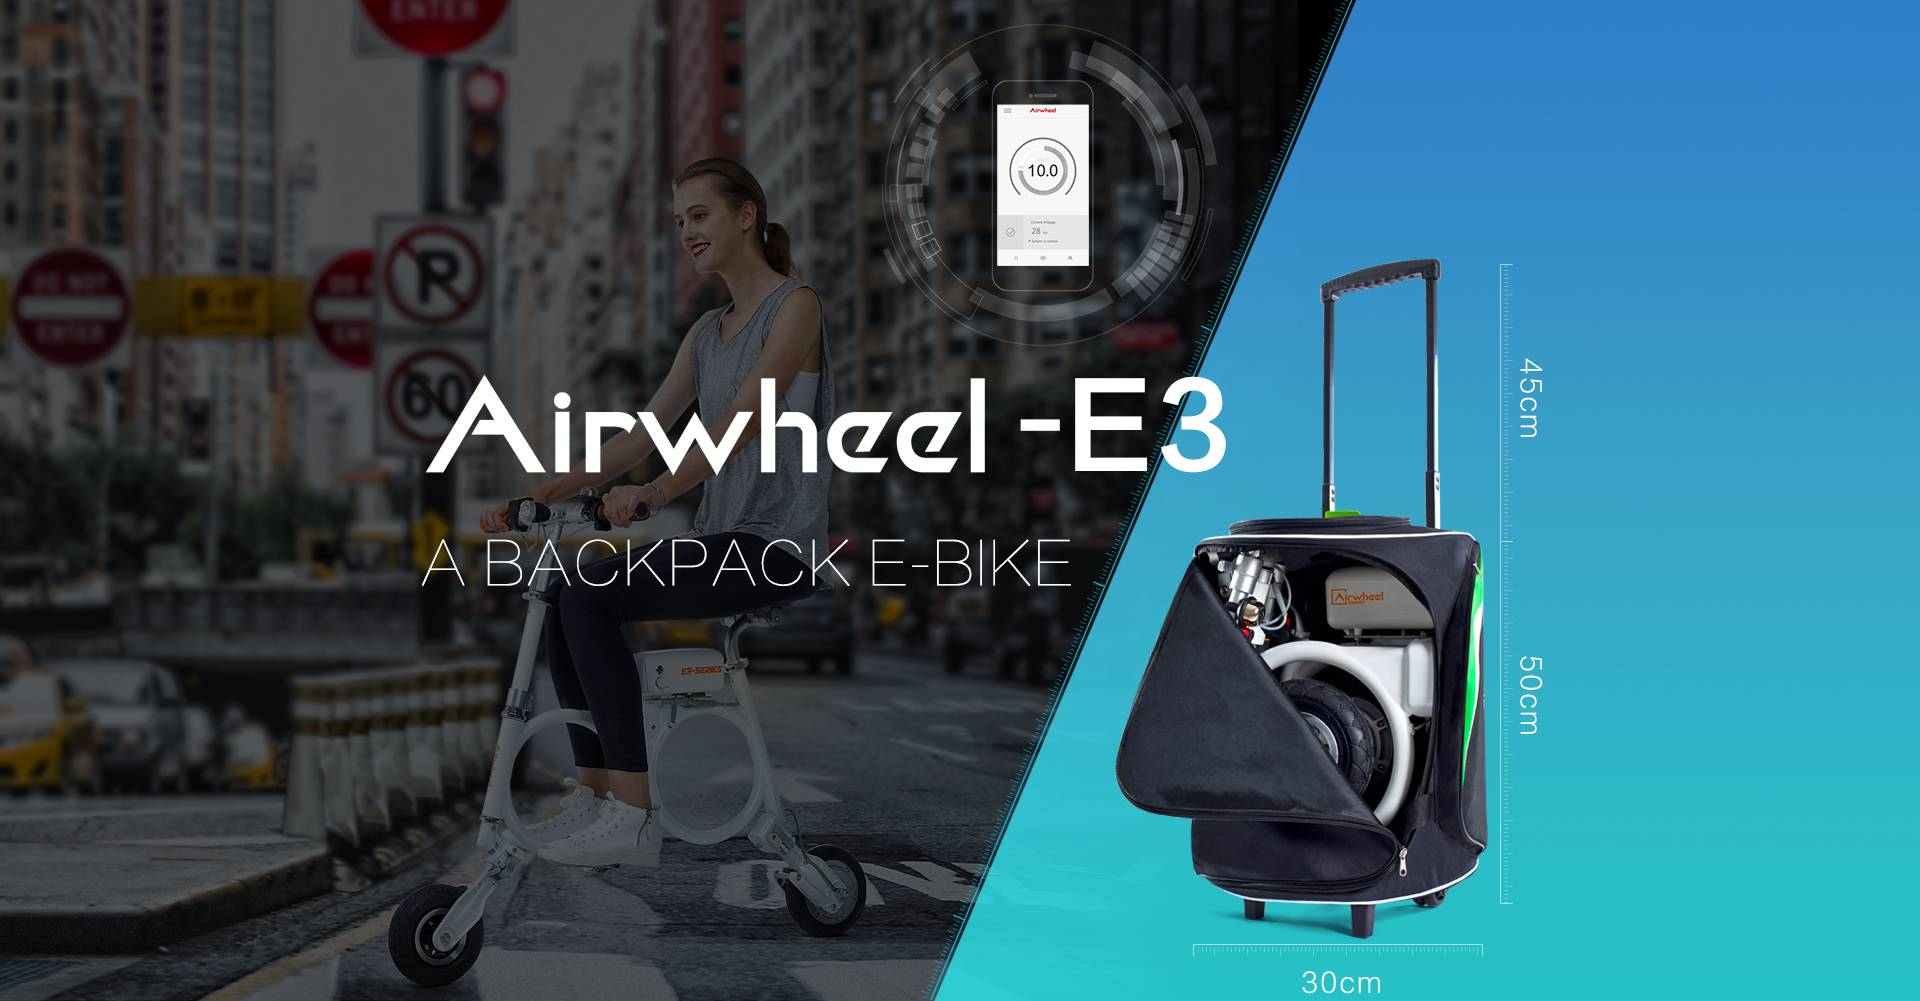 Airwheel E3 foldable backpack electric bike